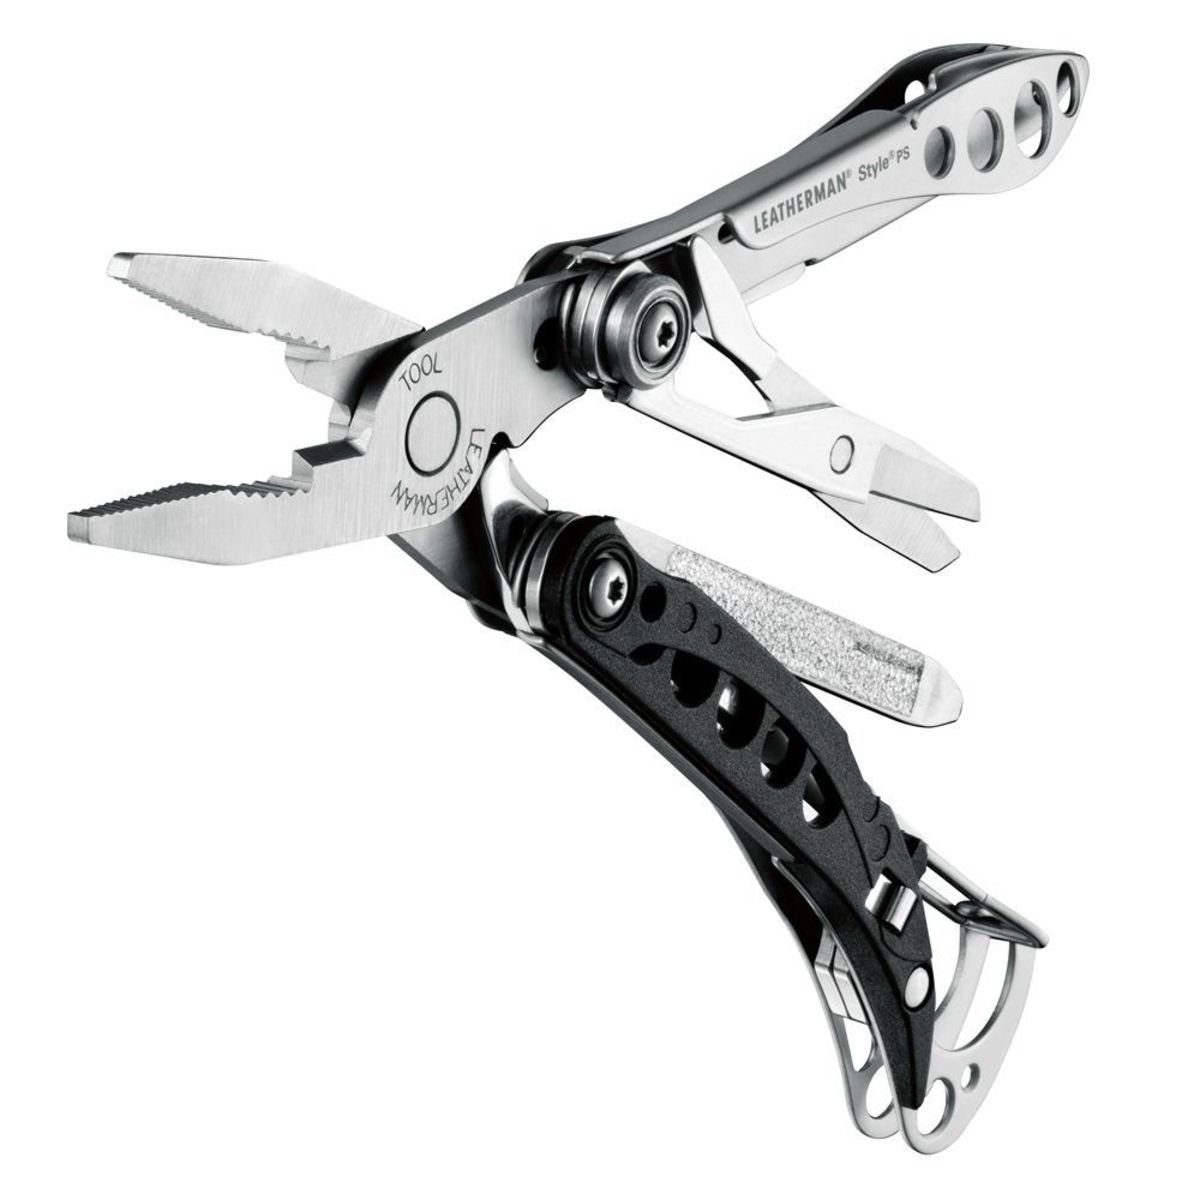 Leatherman Multitool »STYLE PS (Multitool)«